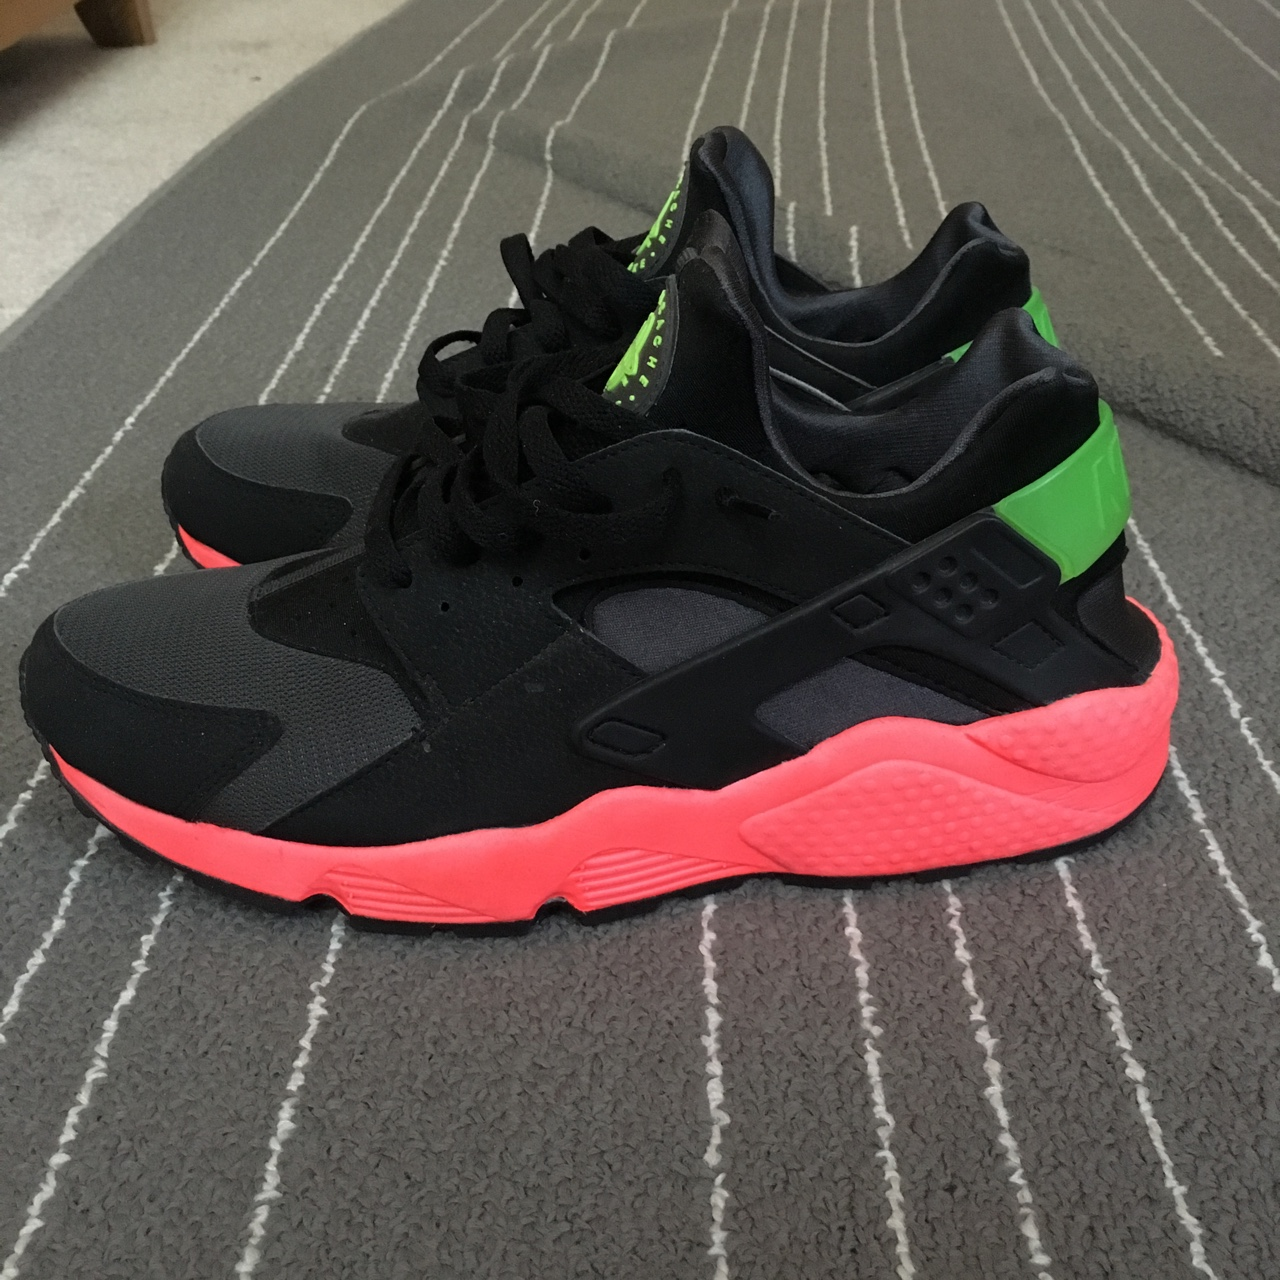 new arrival 32139 4fbed Nike Huaraches Hyper Punch size 12 (Back right strap... - Depop